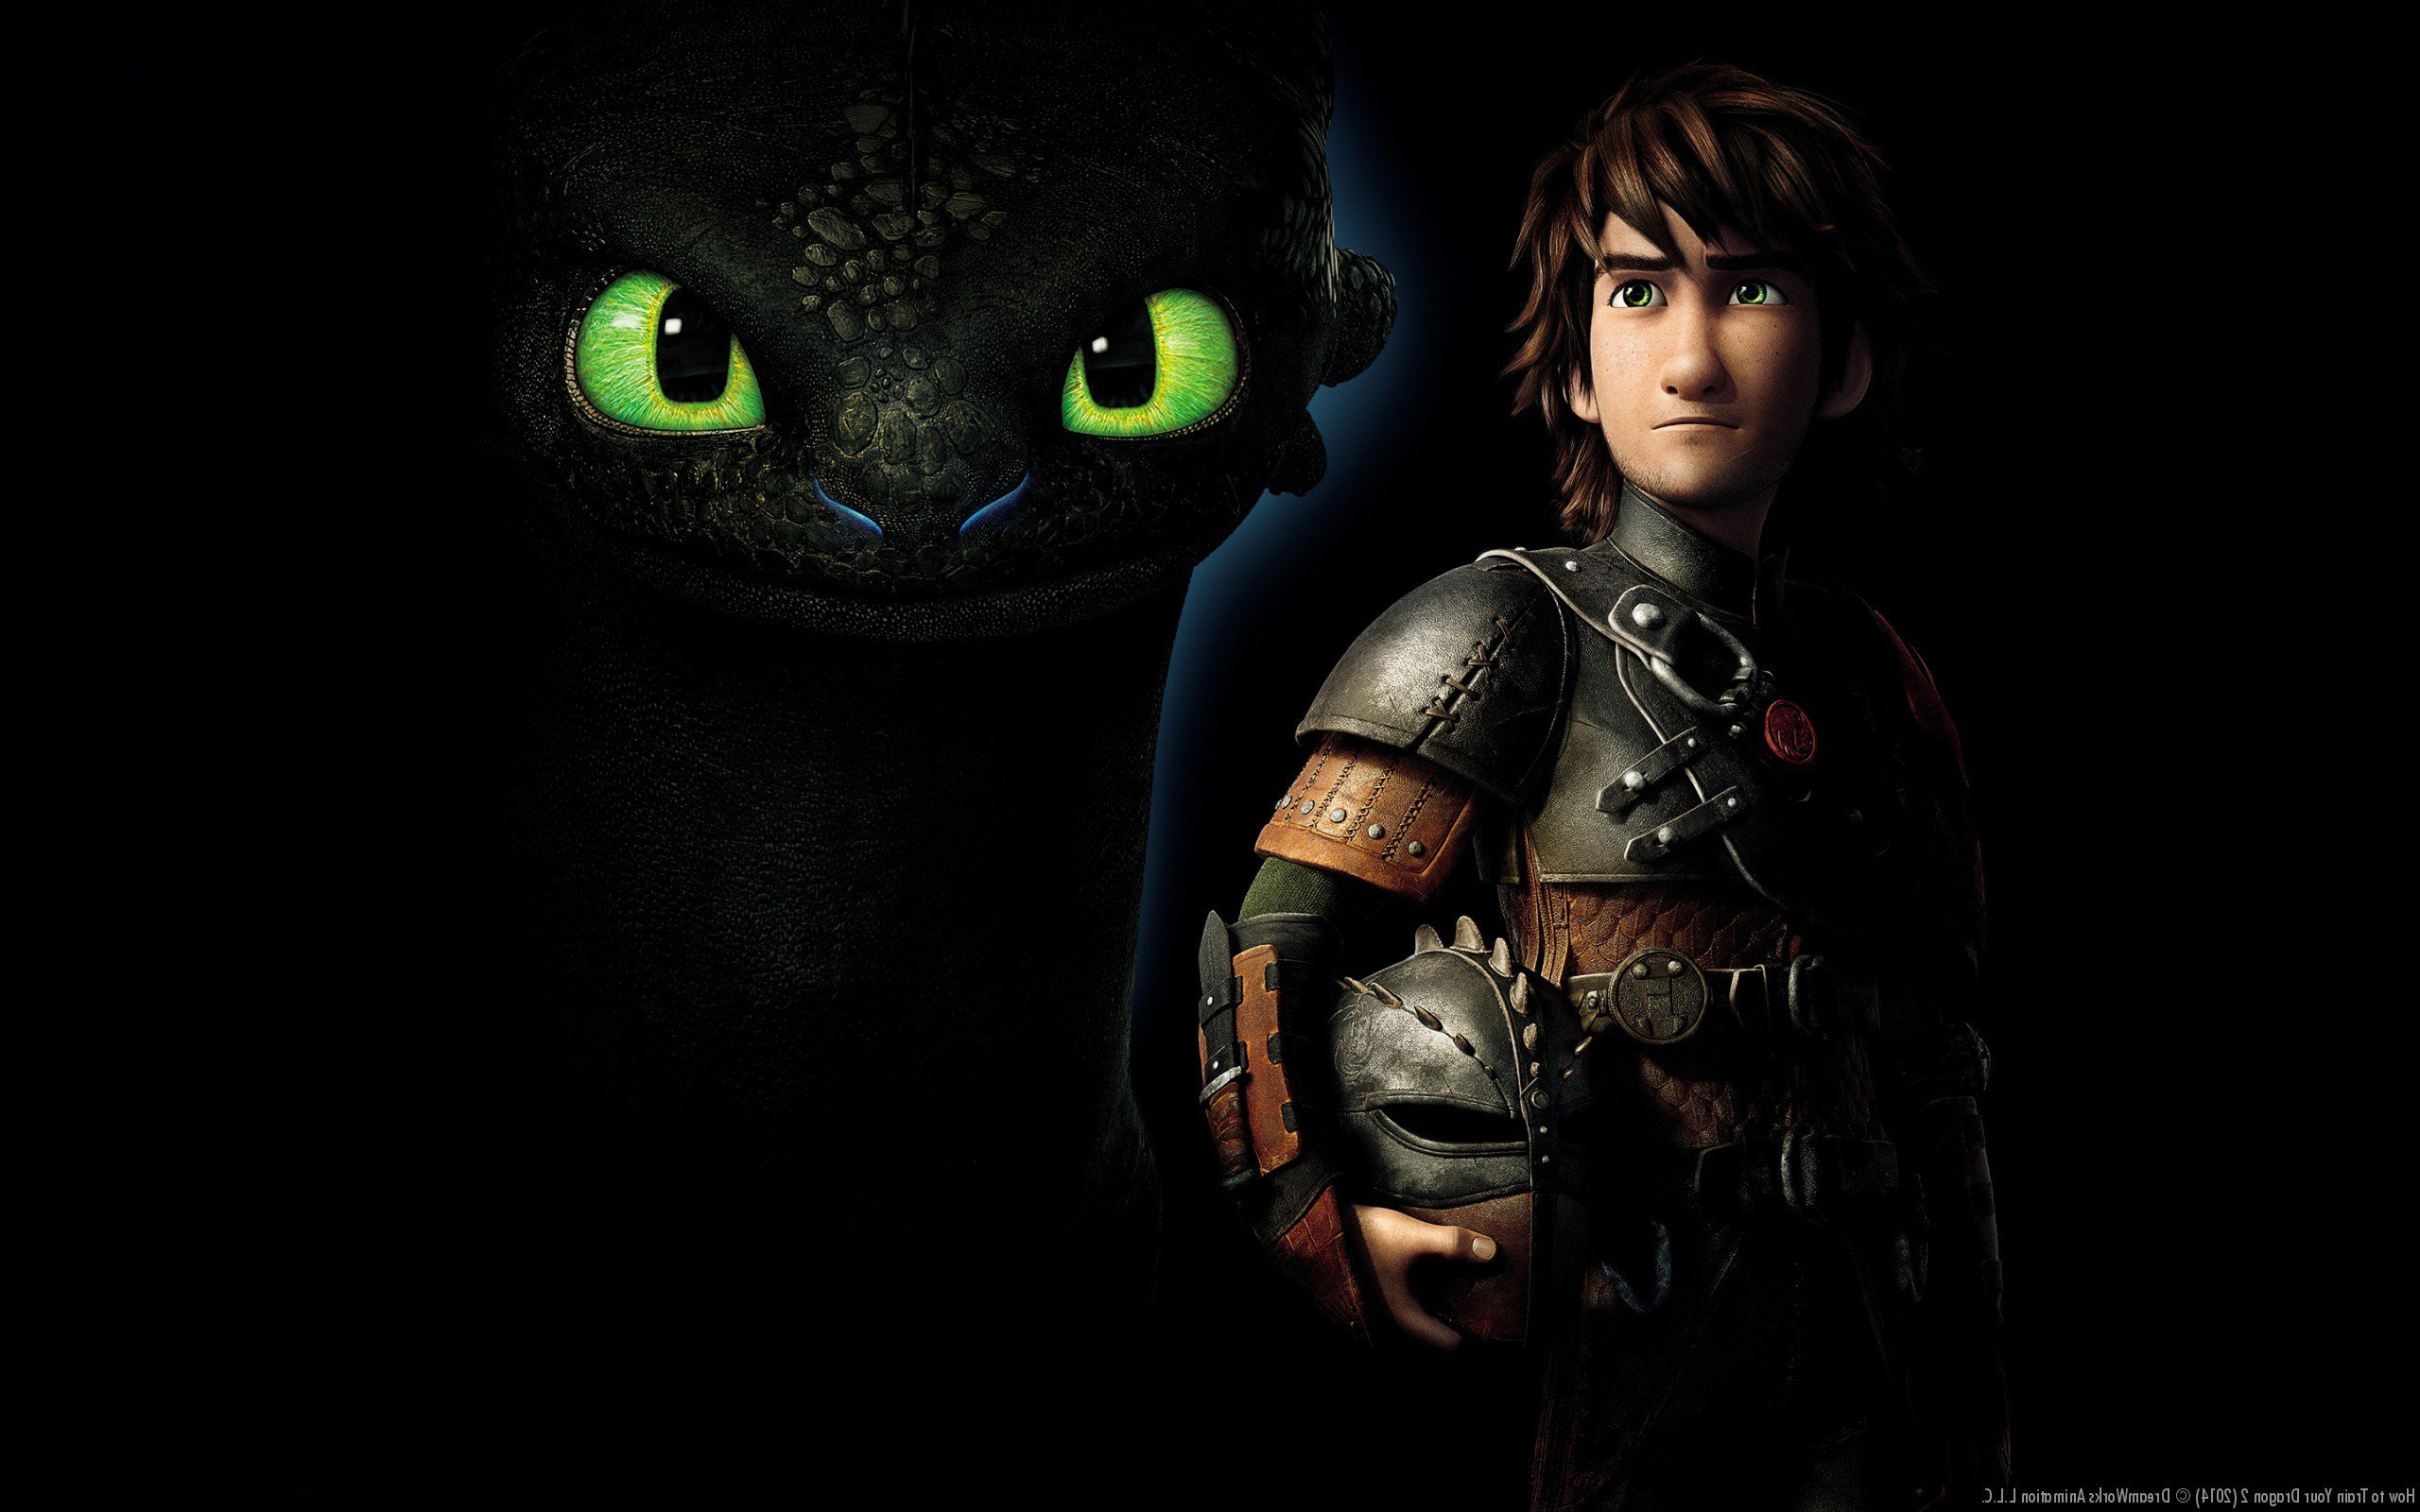 How To Train Your Dragon Wallpaper Tourism Company And Tourism